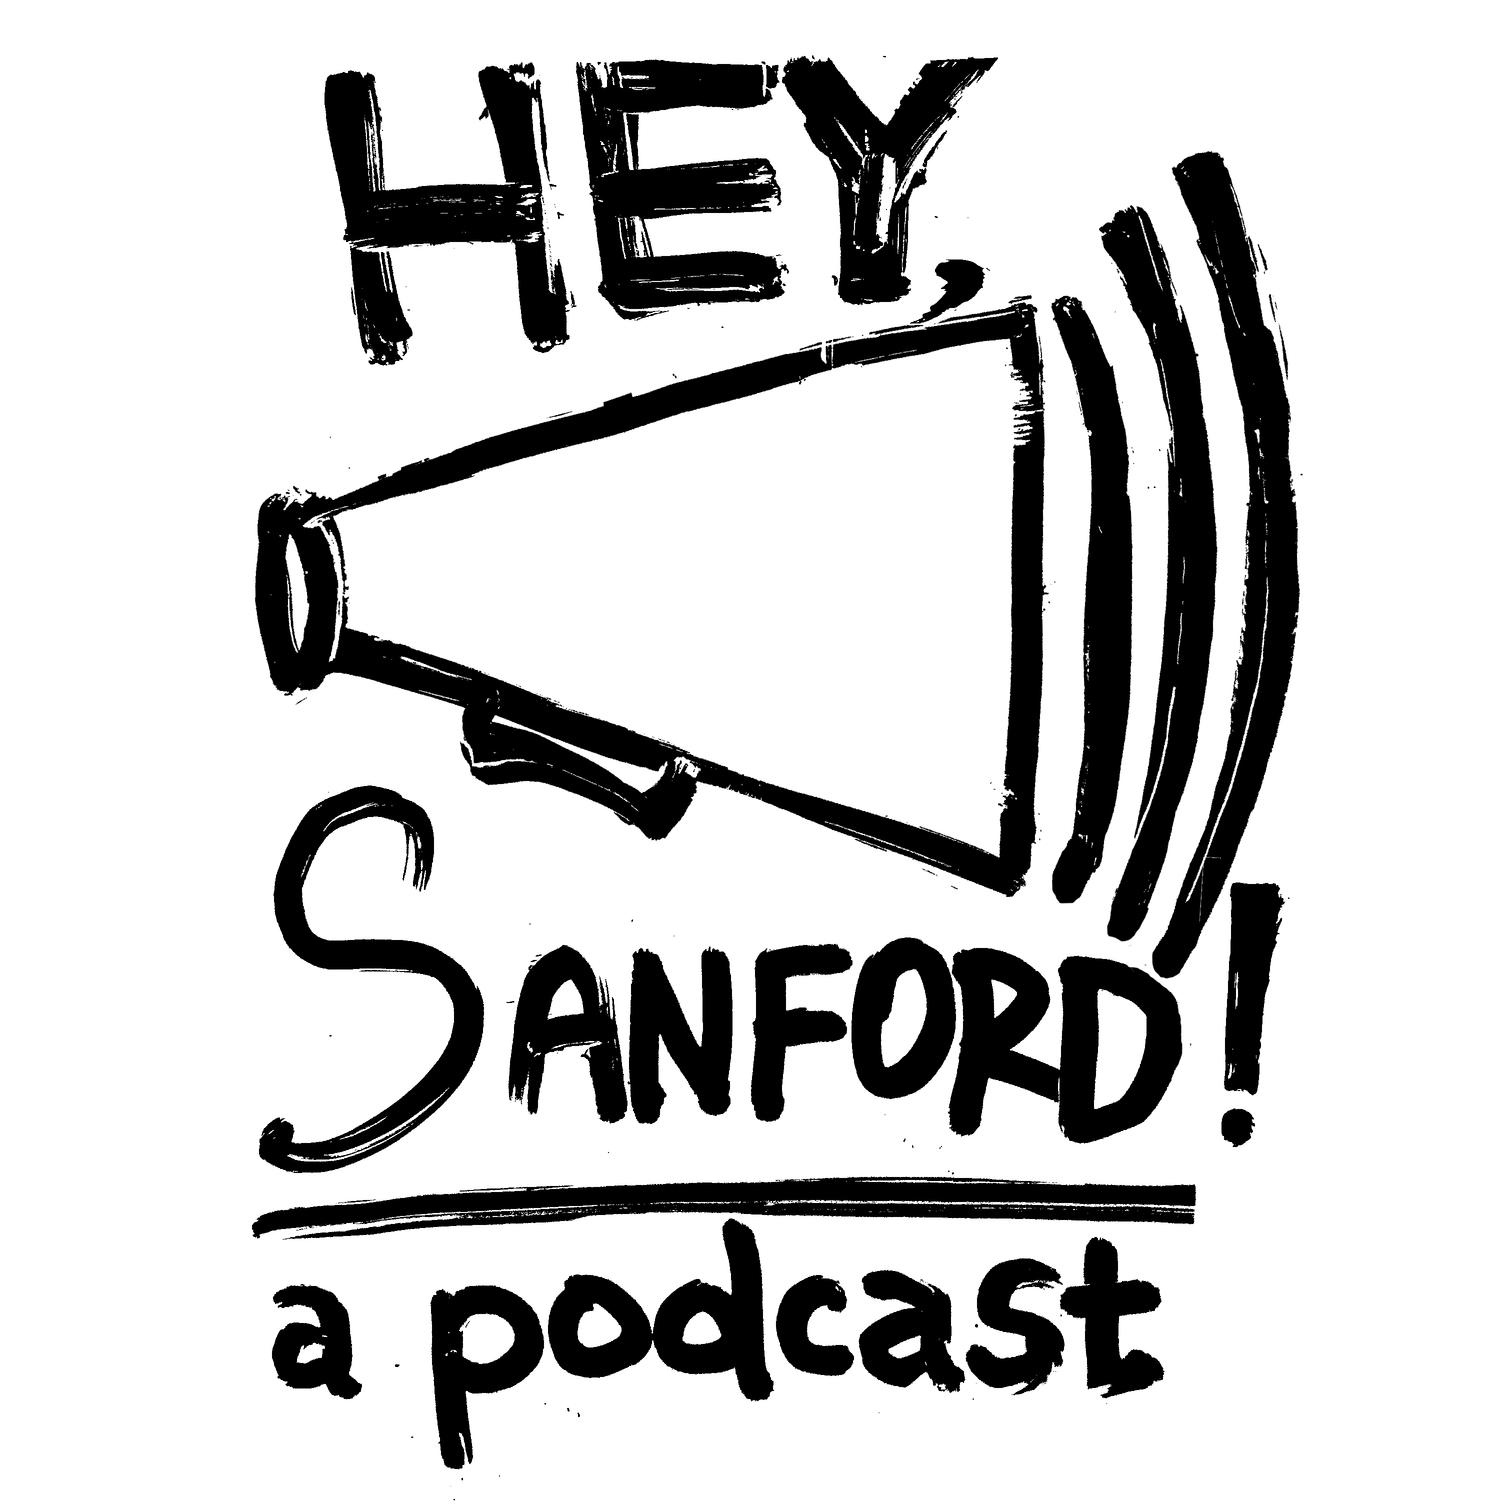 HEY, Sanford! - A podcast